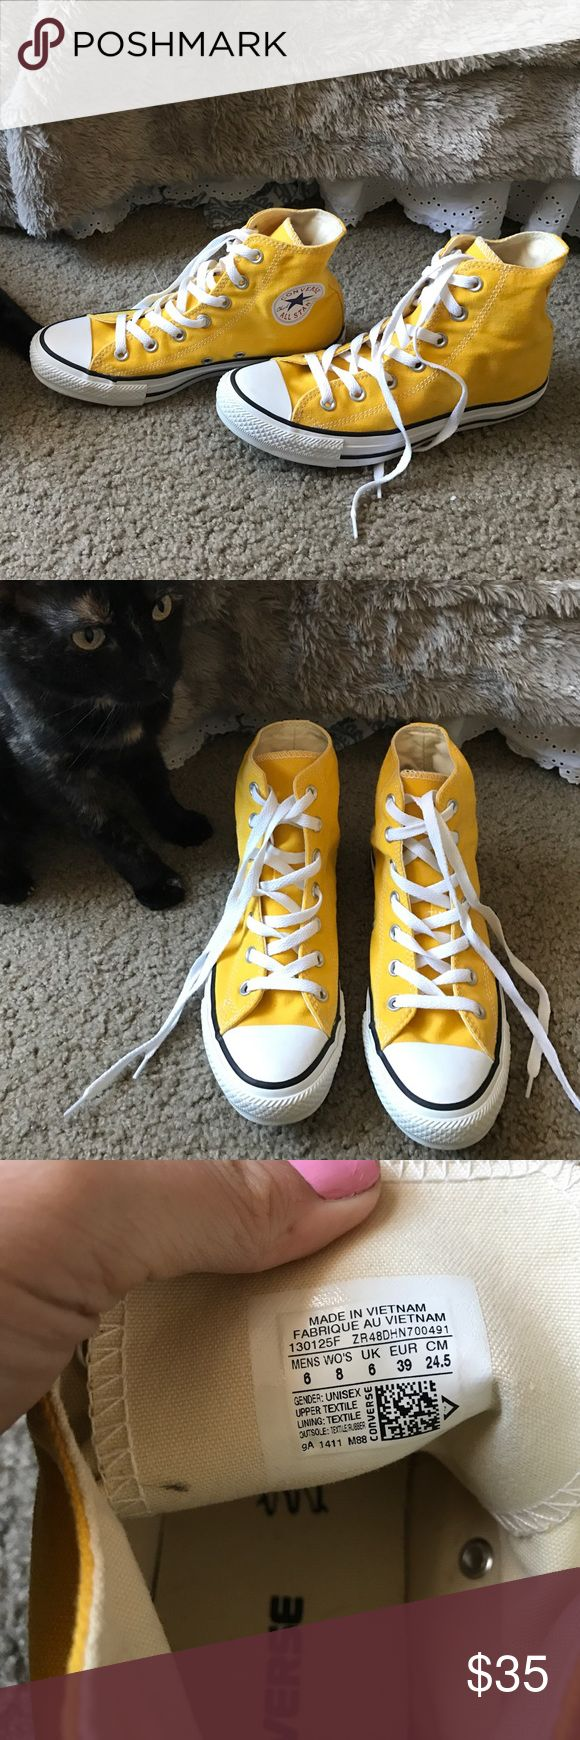 New Yellow/Gold High top Chuck Taylor Converse! Only worn once (if that... I can't remember) bright yellow Converse high tops! This brand runs a little big with sizing. I usually wear an 8.5 and these are an 8! They only make them in whole sizes. Converse Shoes Sneakers